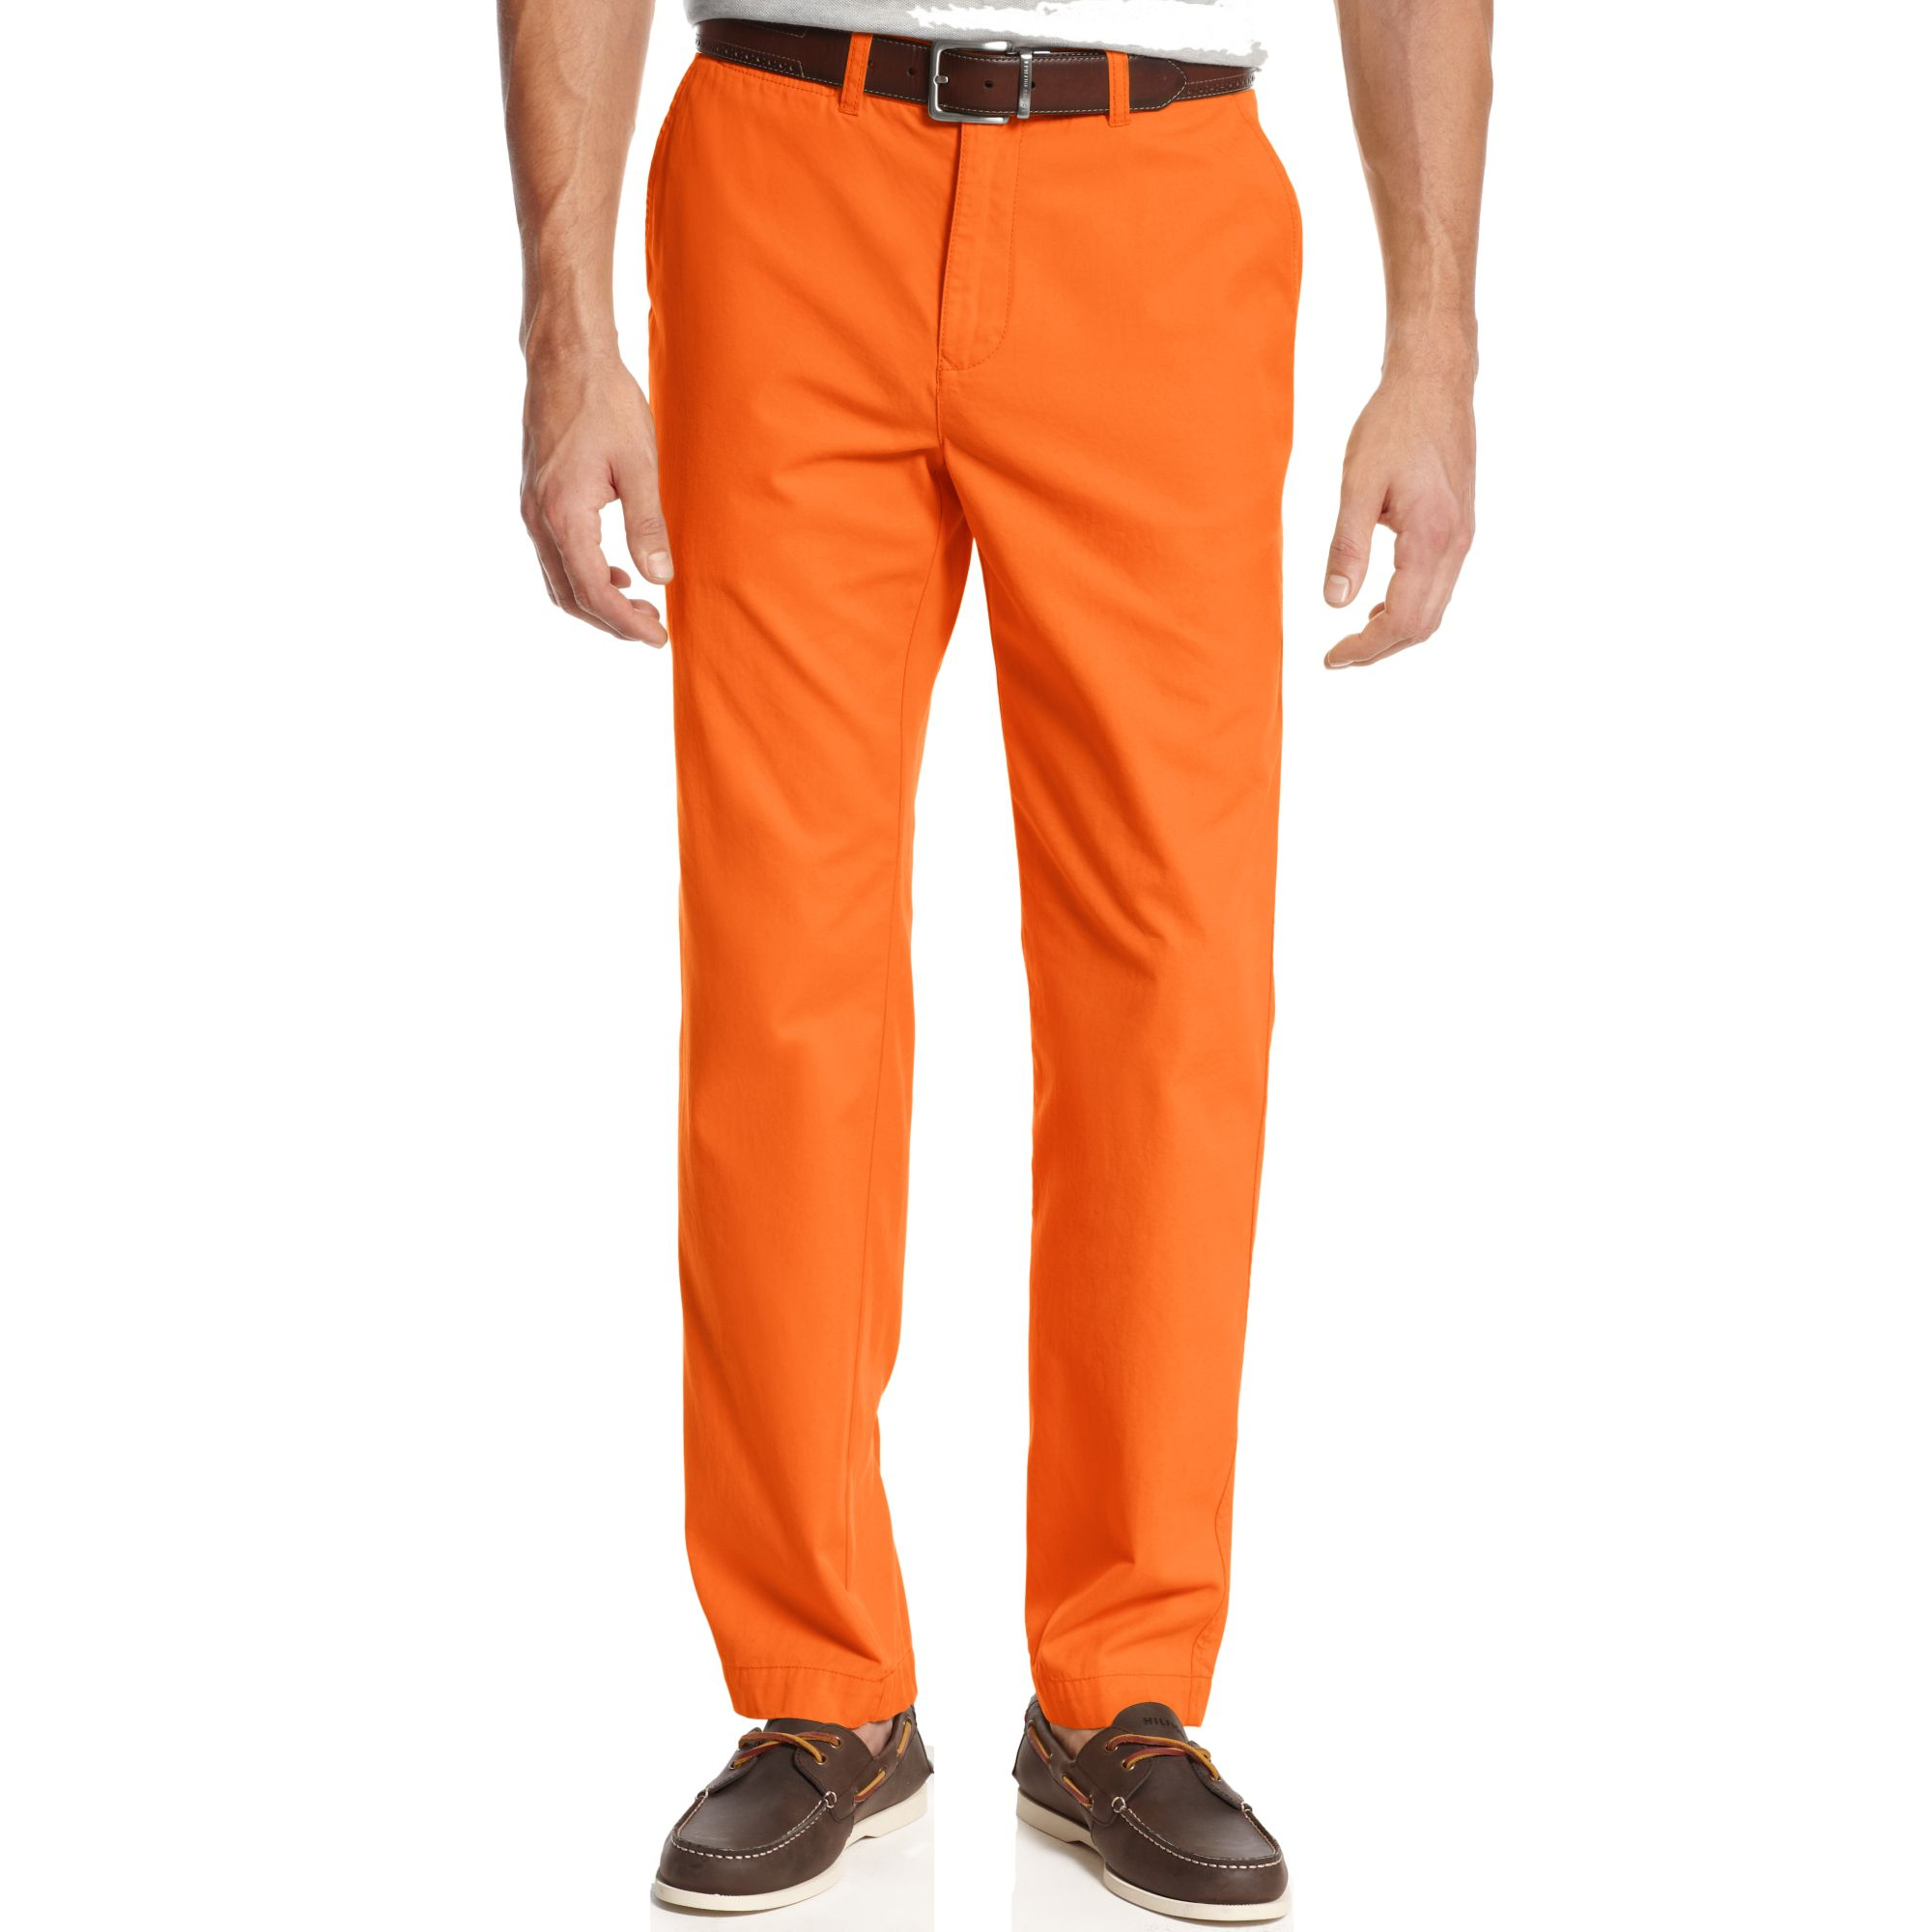 Men's Orange Dress Pants These orange dress pants are perfect for a wide variety of occasions. Coordinate these slacks with one of our colorful leather belts to add another level to your outfit.